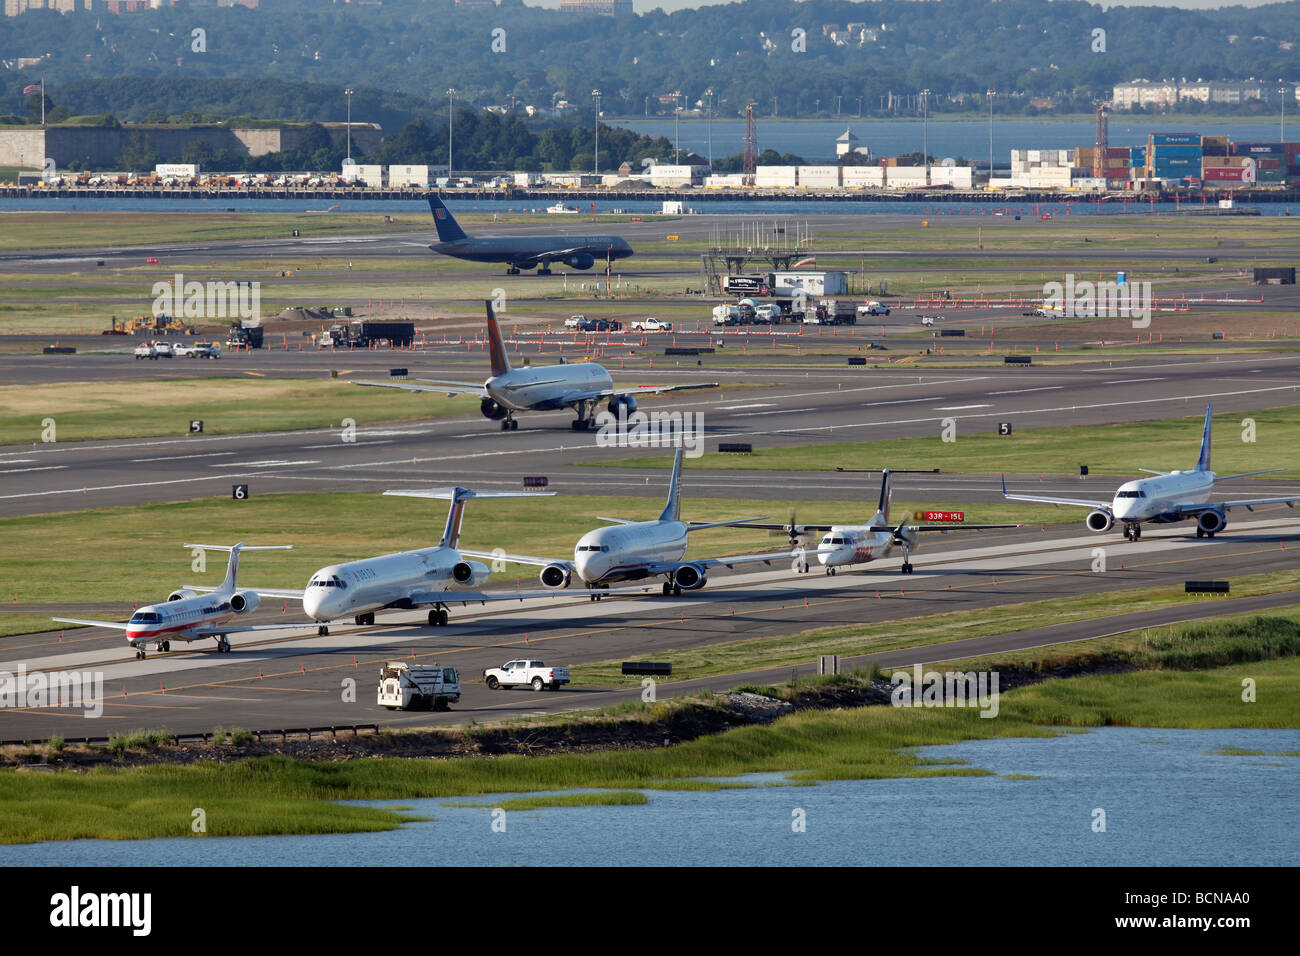 Activity at Logan International Airport, Boston, Massachusetts - Stock Image